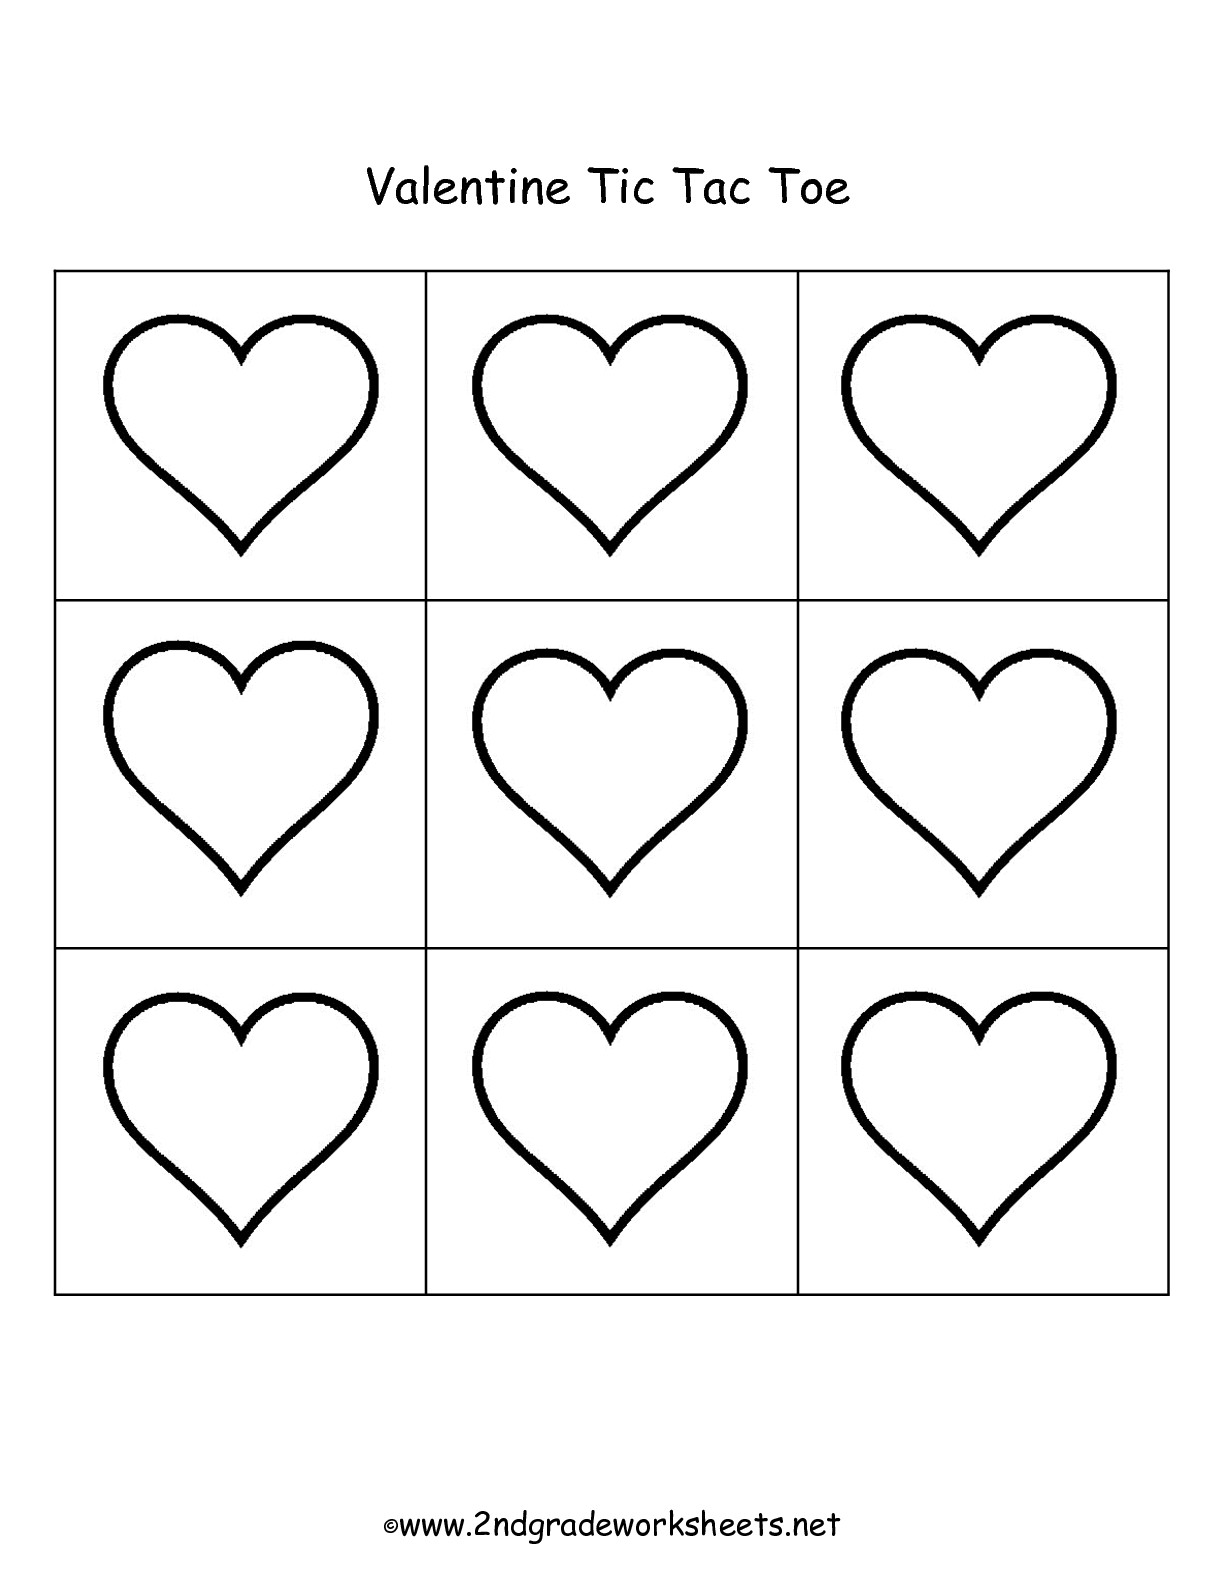 Valentines Day Printouts And Worksheets